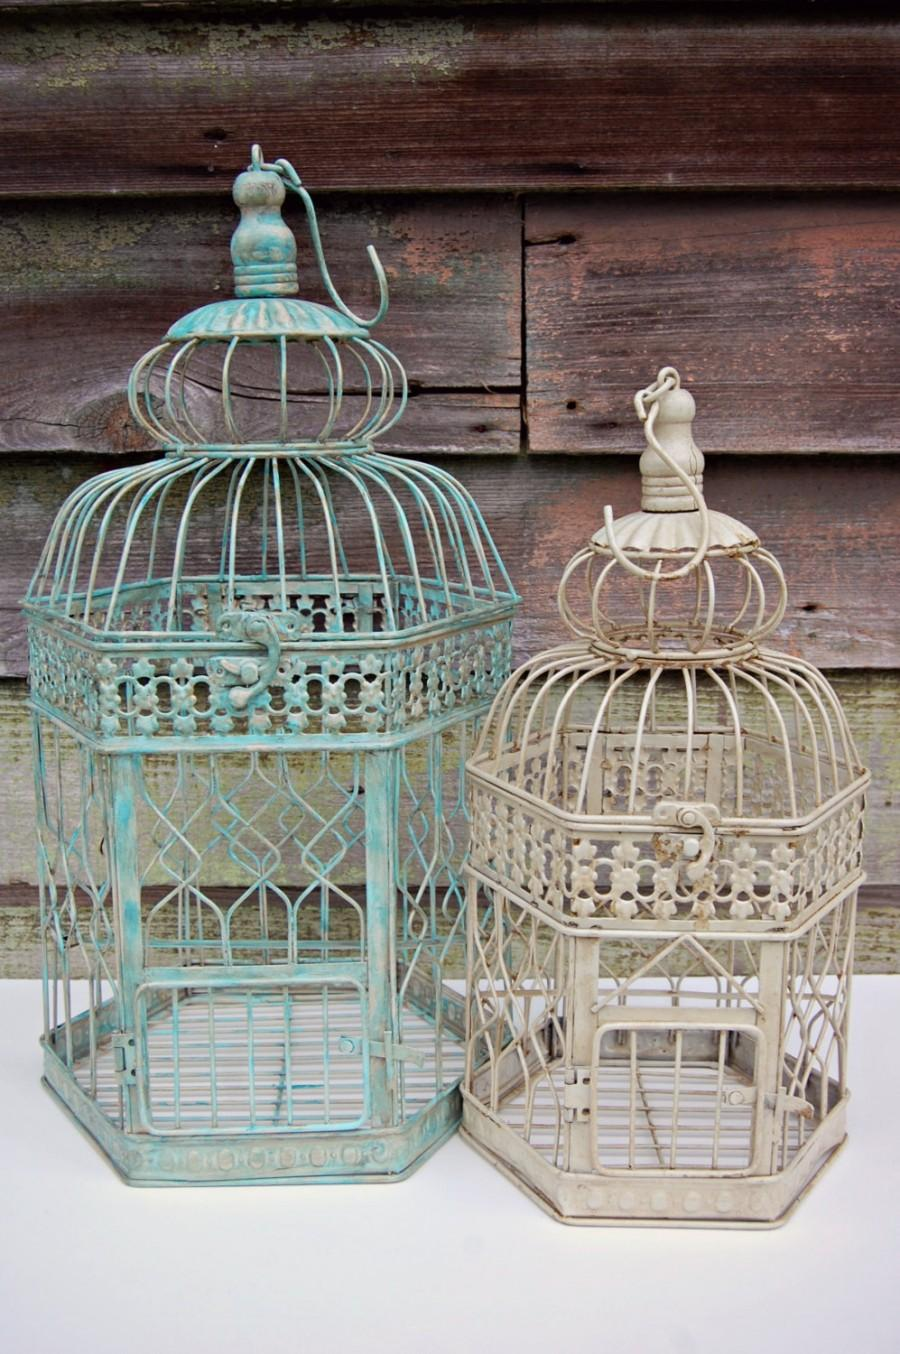 Sale Shabby Chic Rustic Wedding Decor 14quot Bird Cage Card Holder Wis...